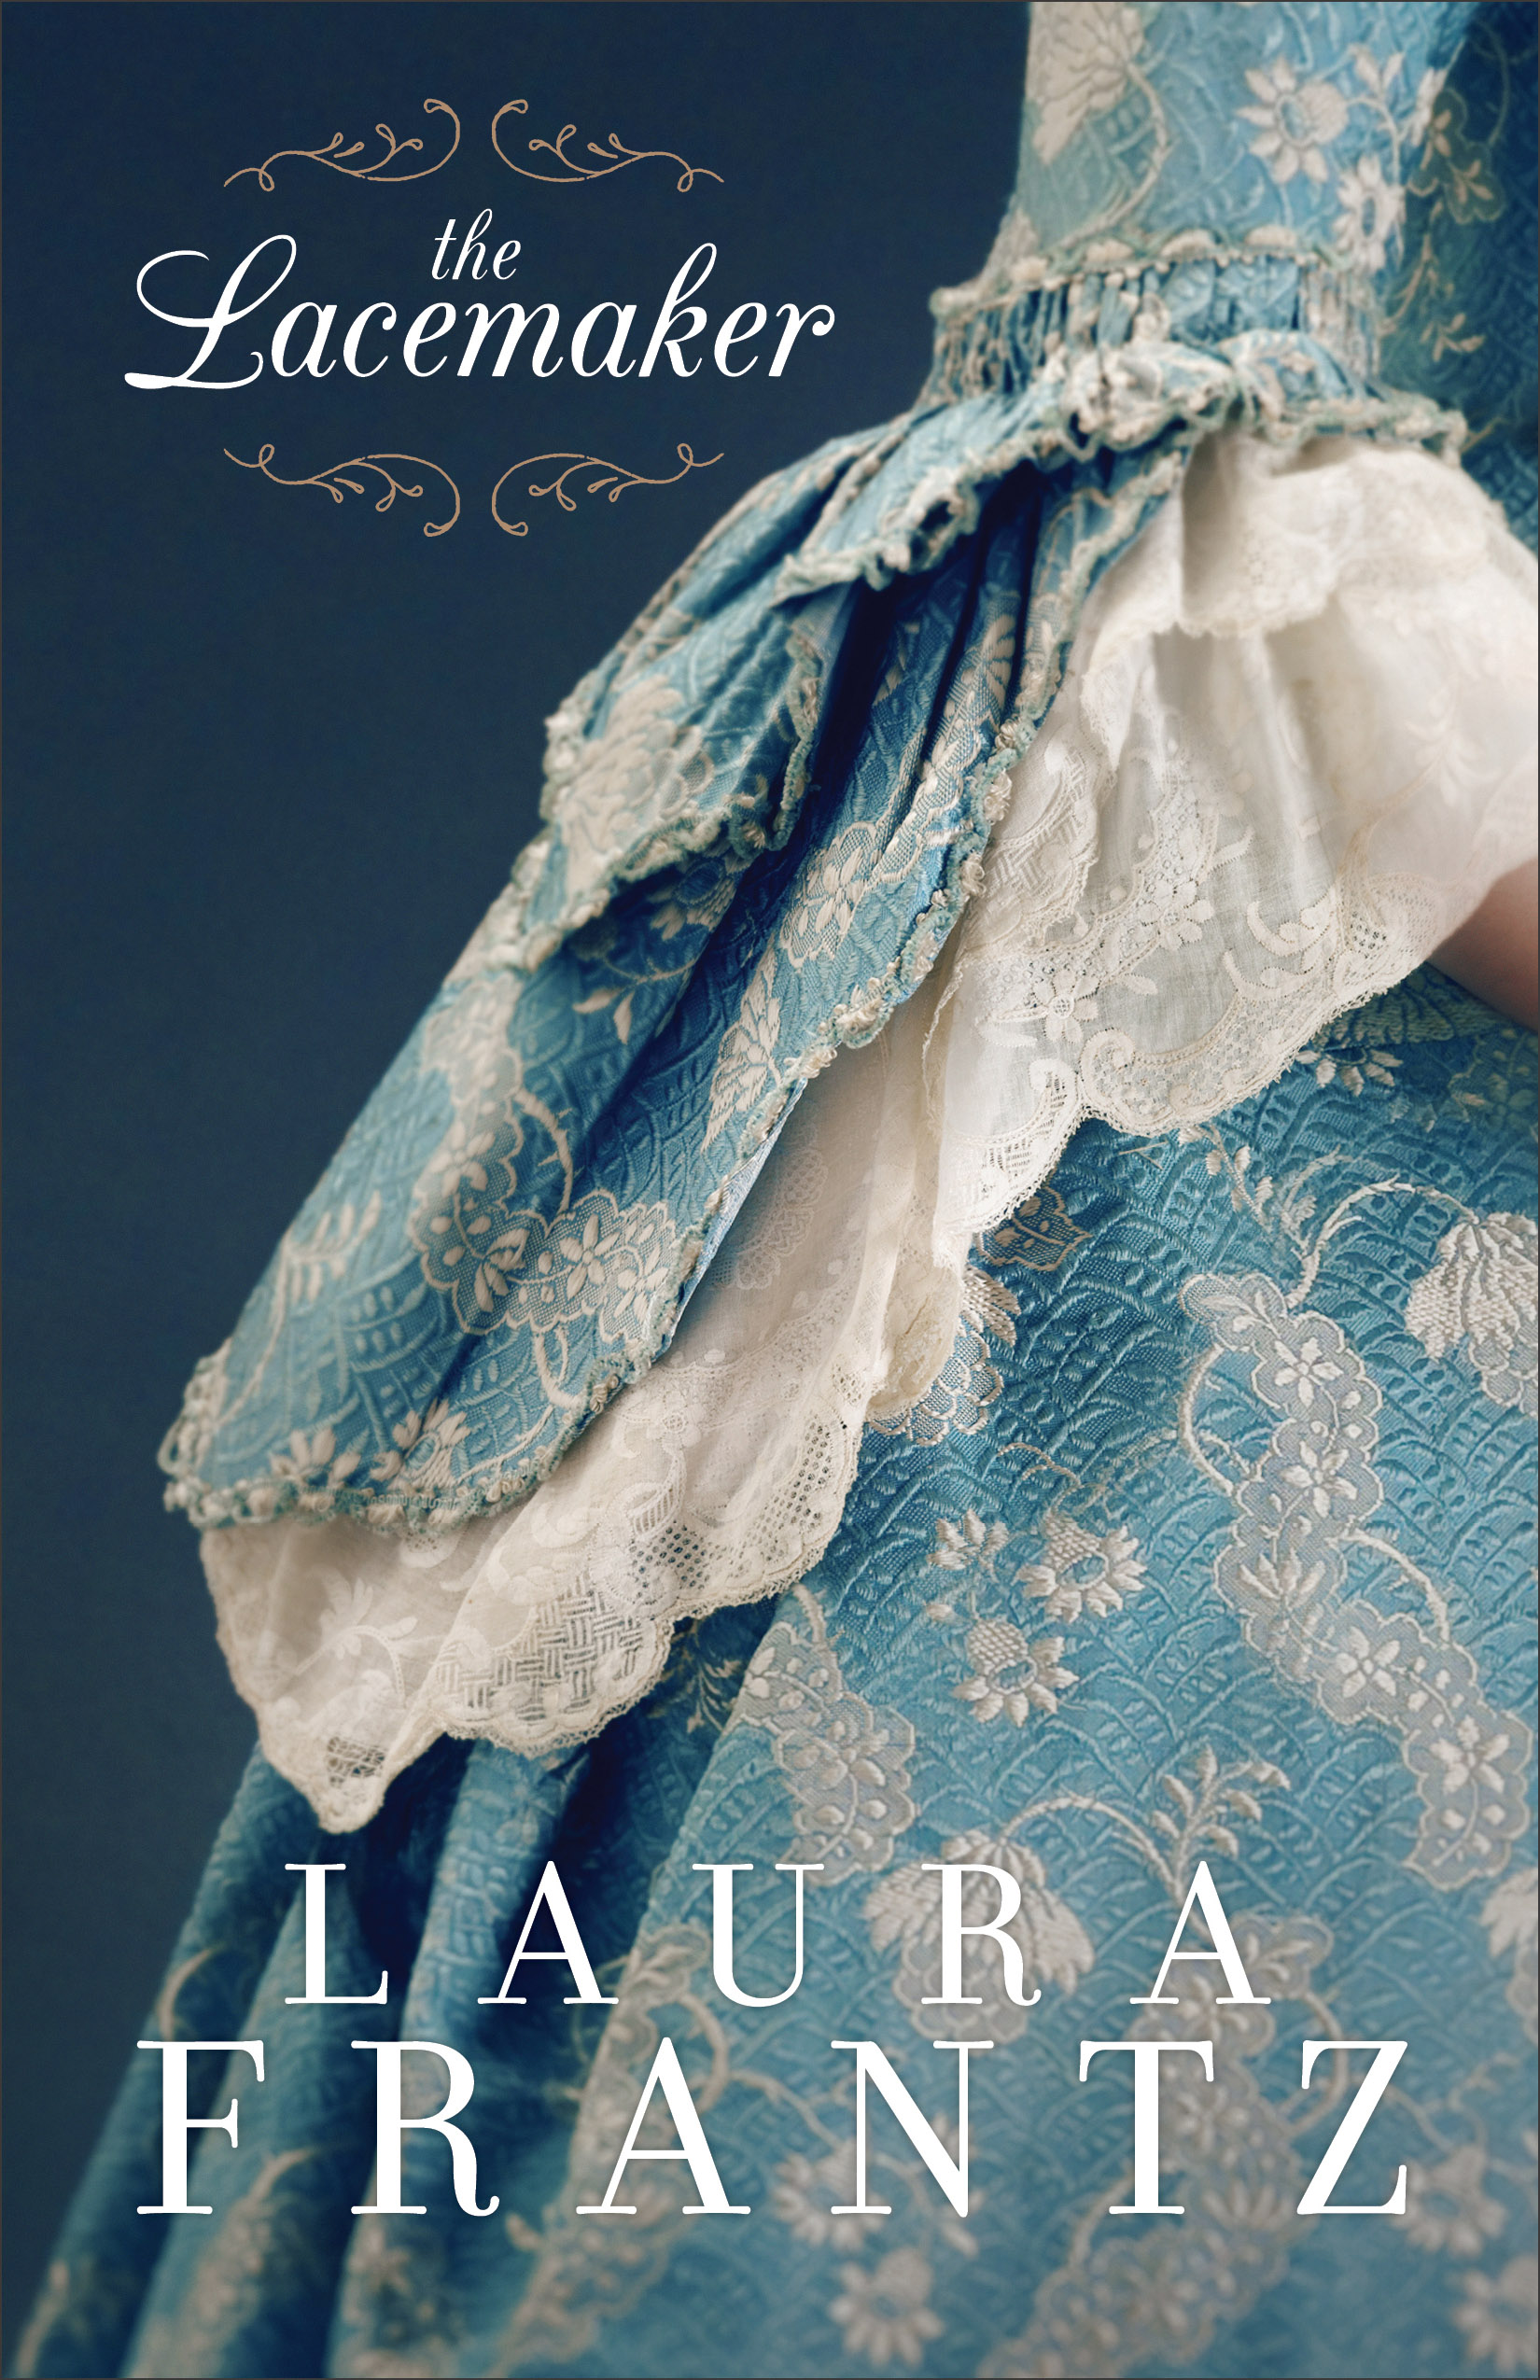 Book review of The Lacemaker by Laura Frantz (Revell) by papertapepins